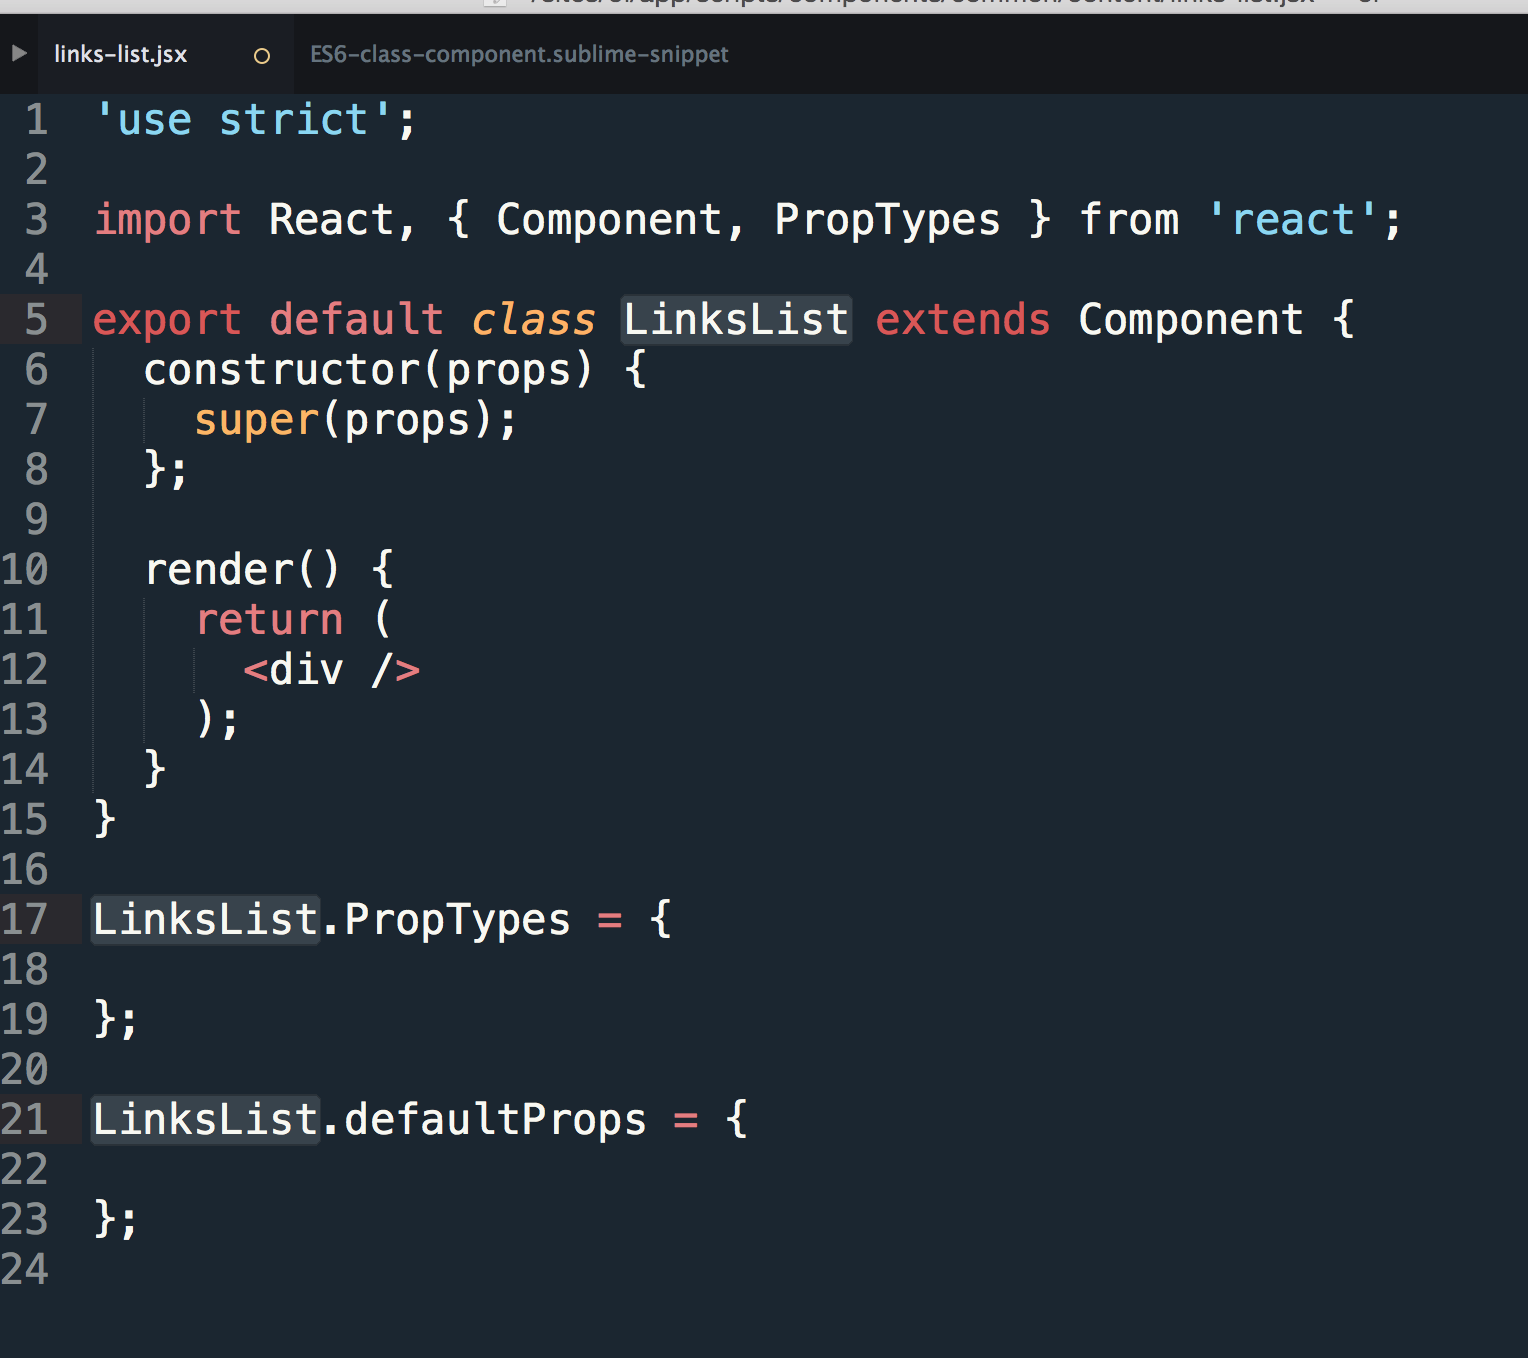 Sublime Text Snippet for a React component using ES6 class